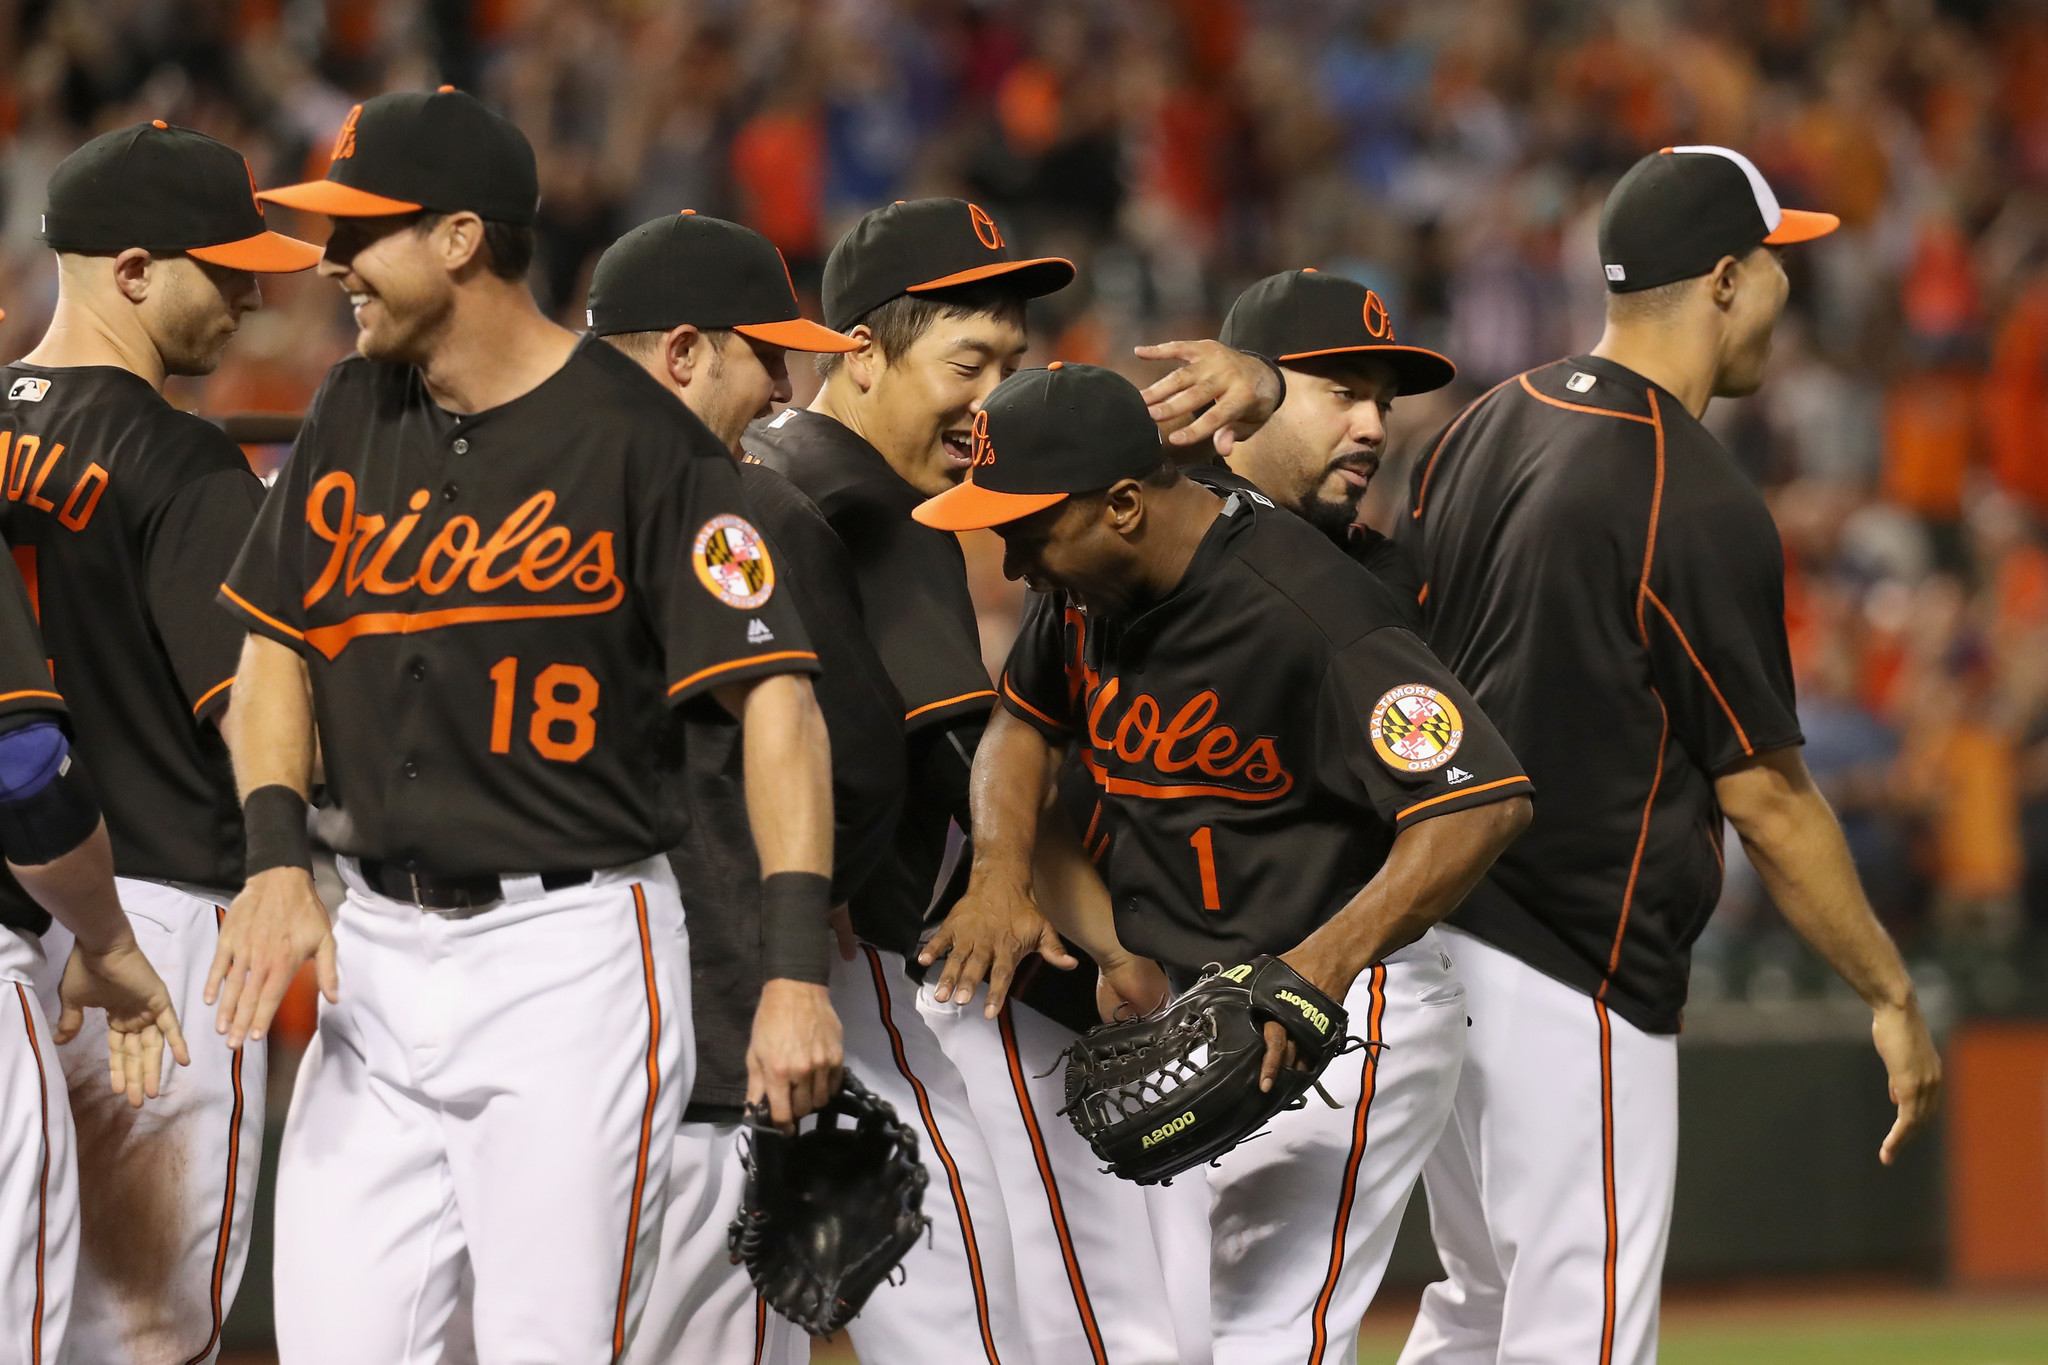 Bal-orioles-get-much-needed-5-4-win-over-rays-without-needing-to-swing-for-fences-20160916